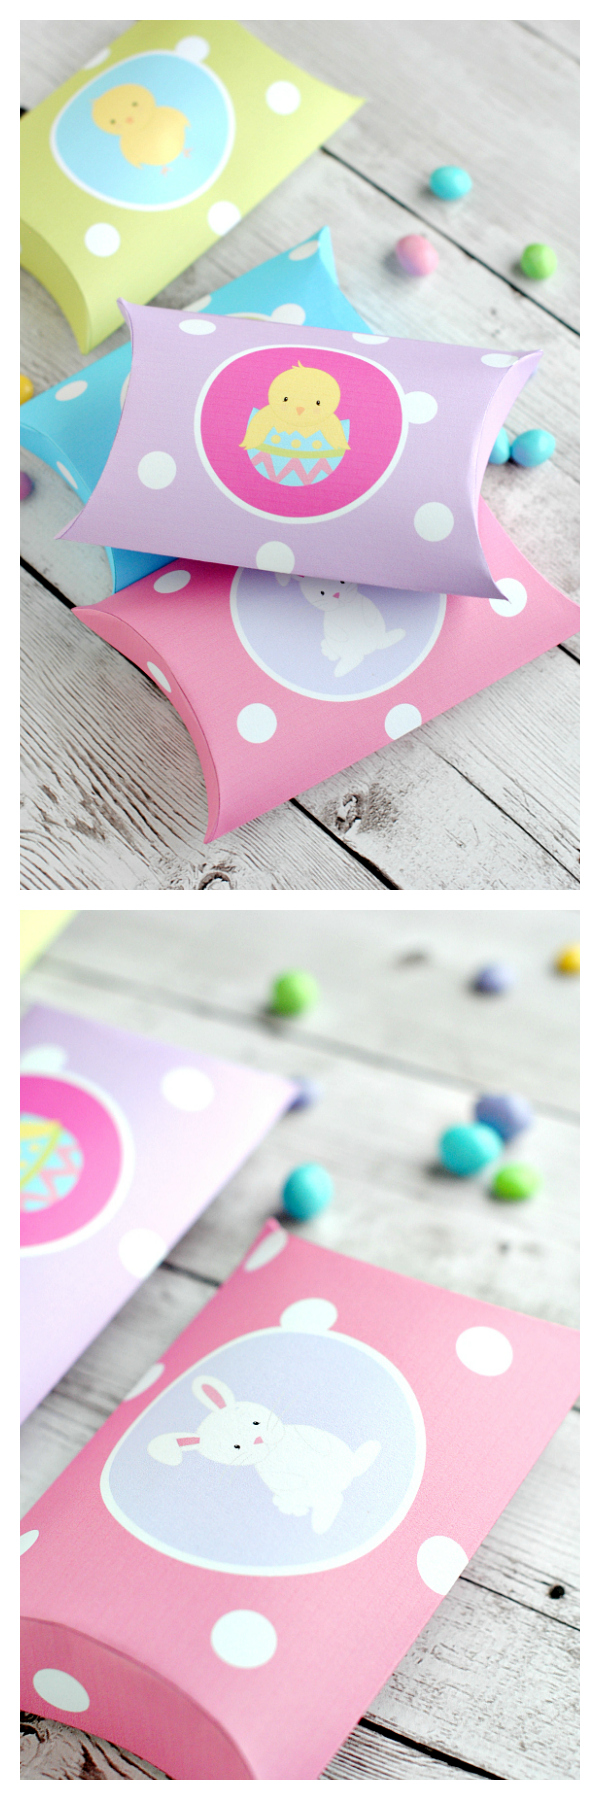 Cute Easter Crafts: All you have to do is print these cute Easter pillow boxes and fill them with candy and you've got a cute Easter favor or little gift! #easter #eastercrafts